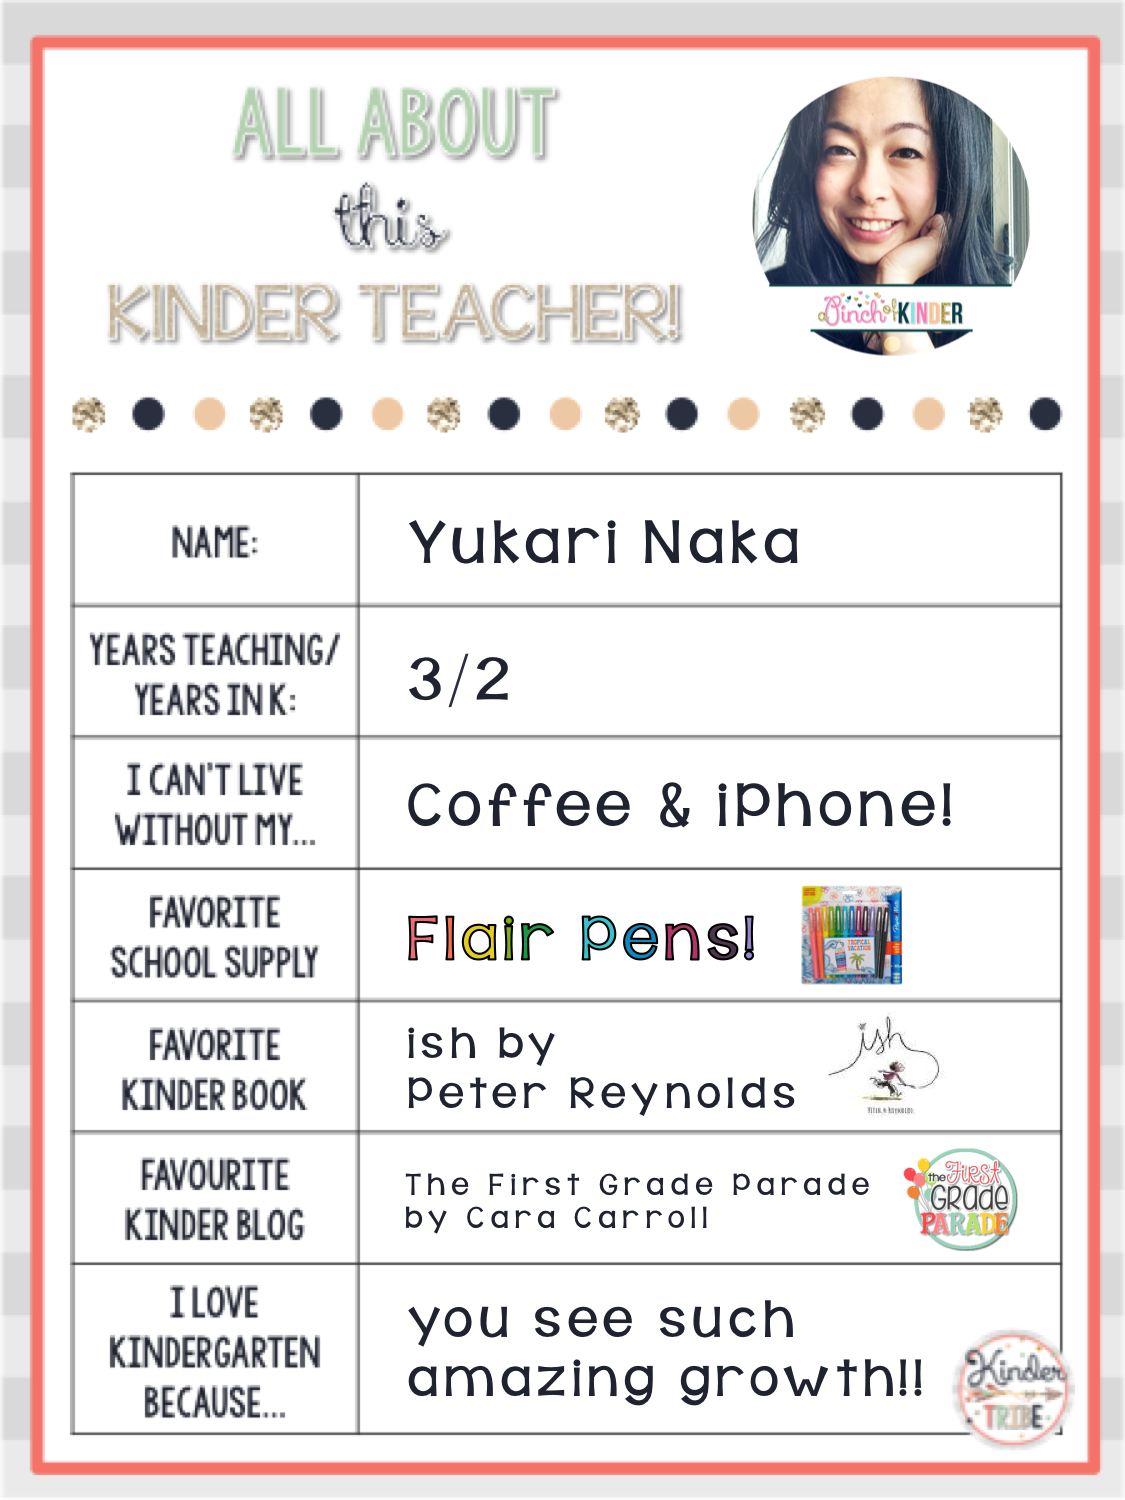 All About This Kinder Teacher Linky Party Kinder Tribe